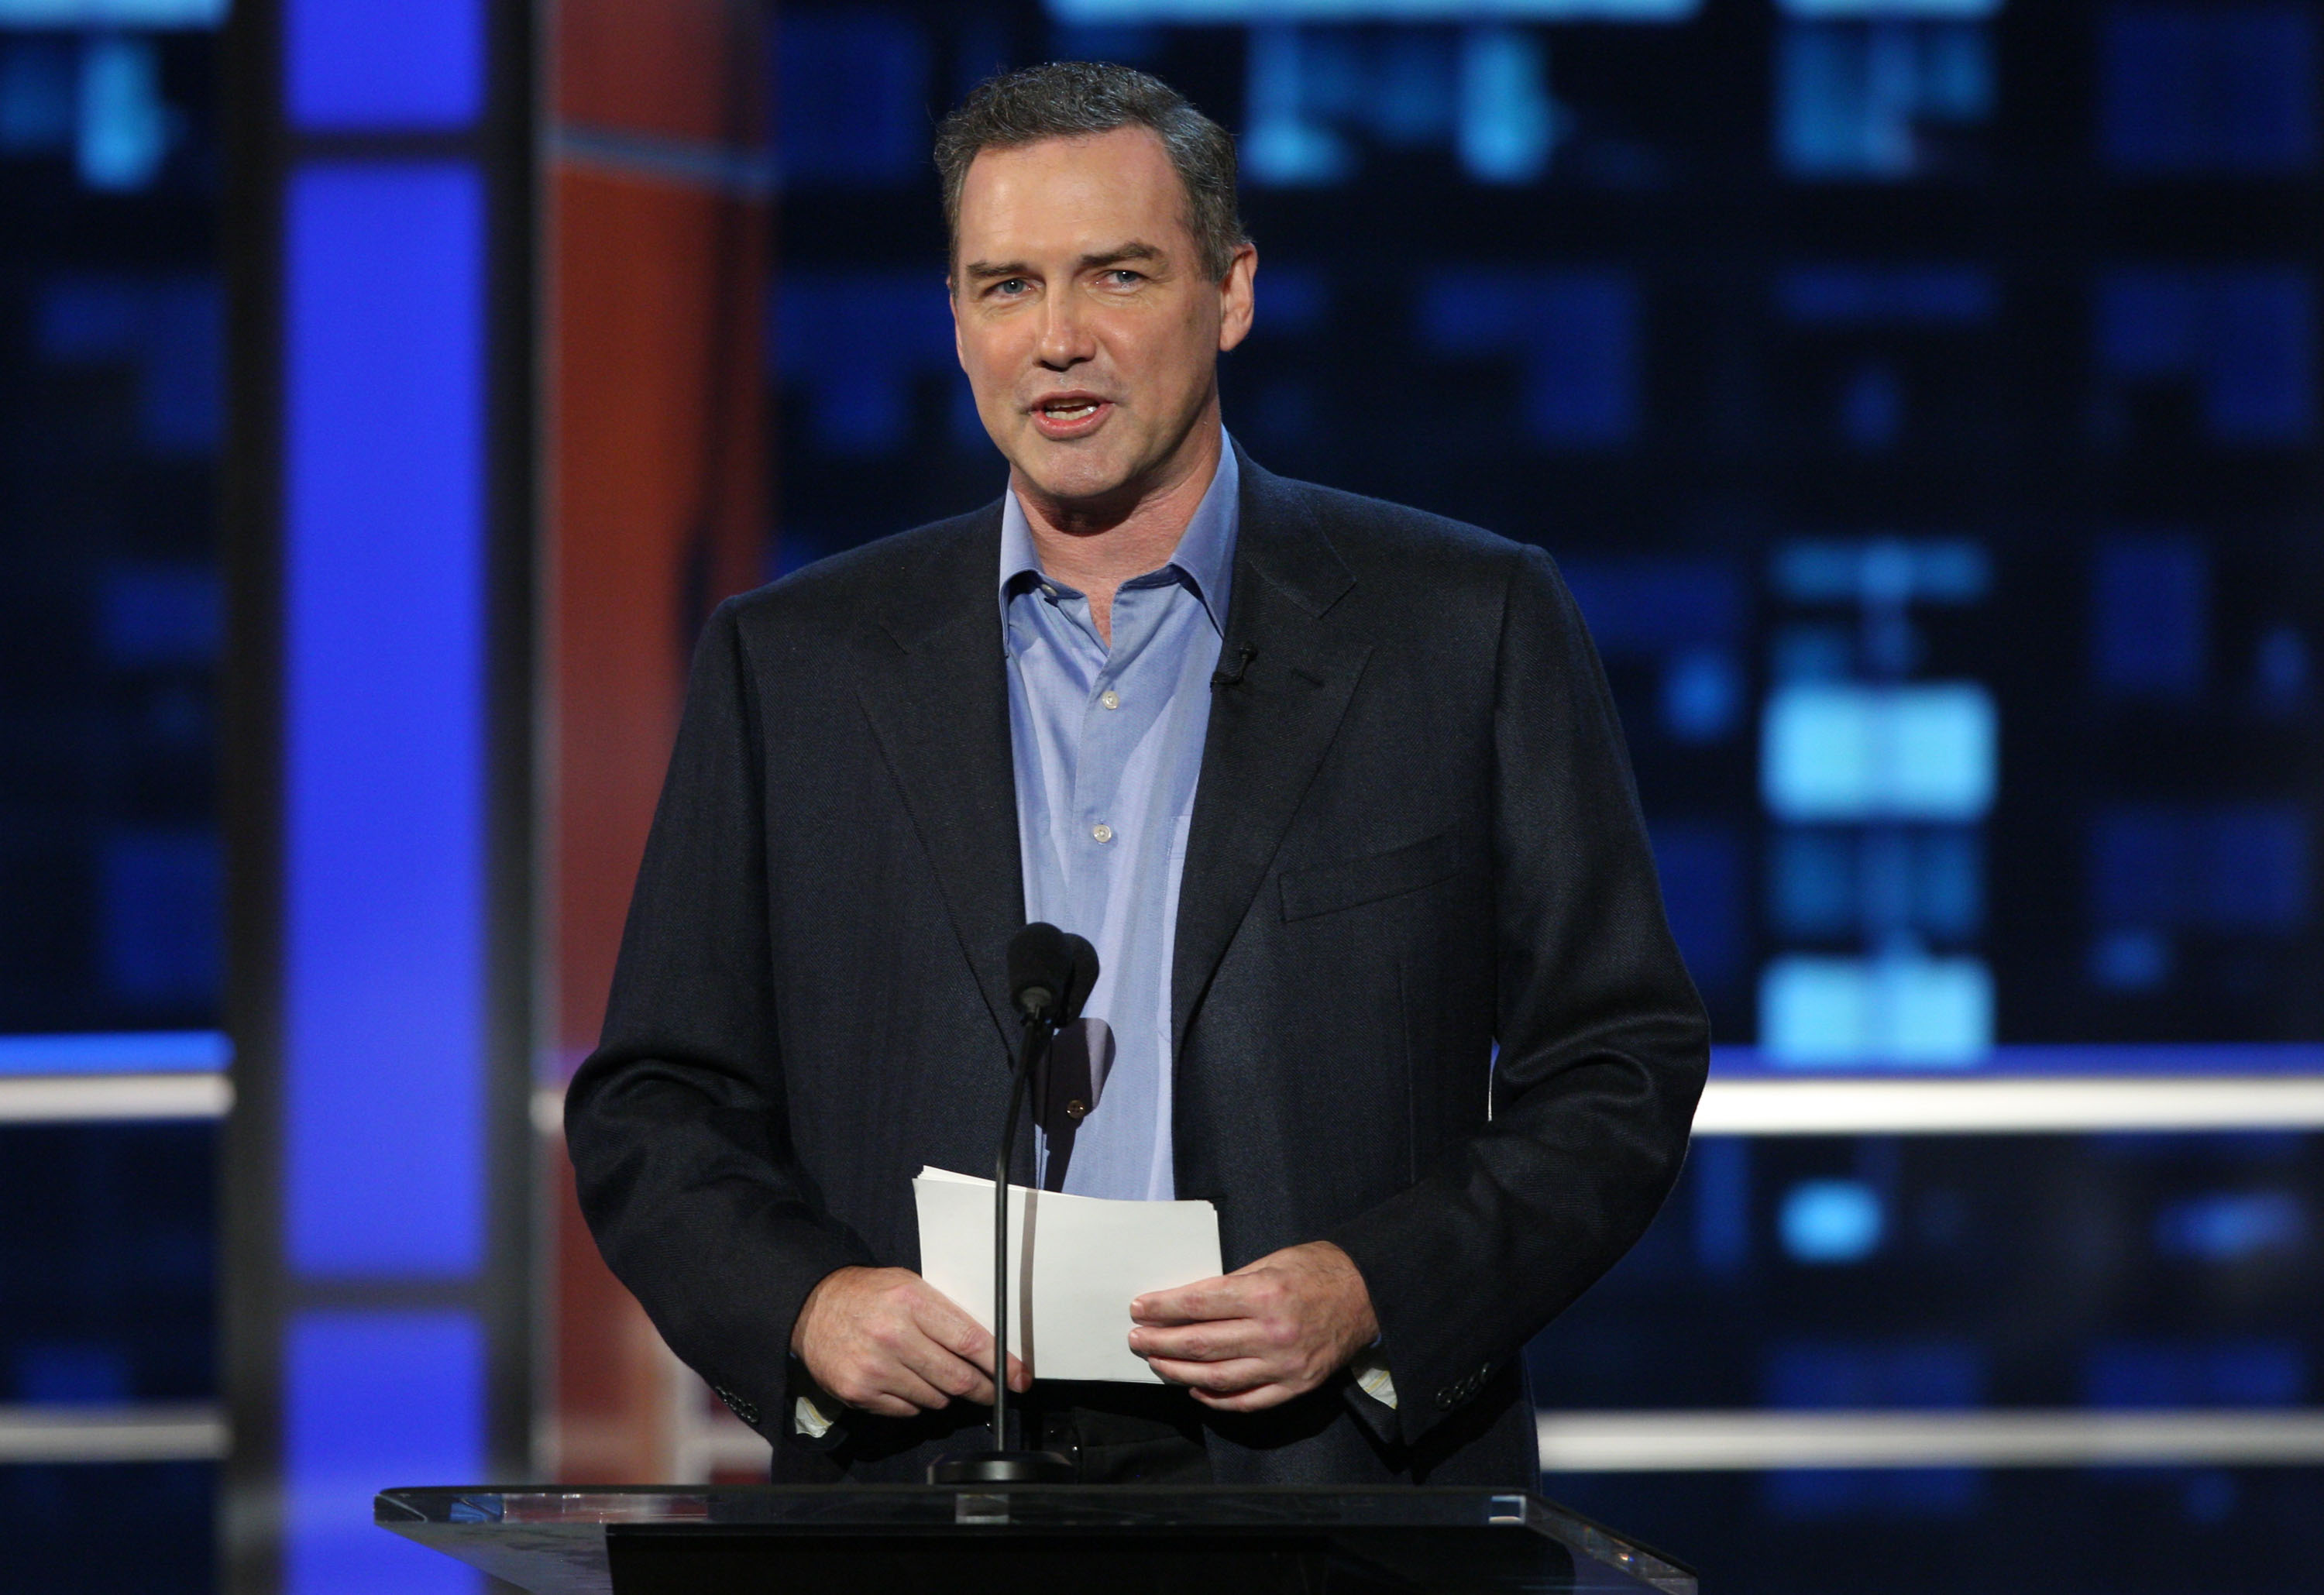 Norm Macdonald's 'SNL' Monolog After He Was Fired Goes Viral